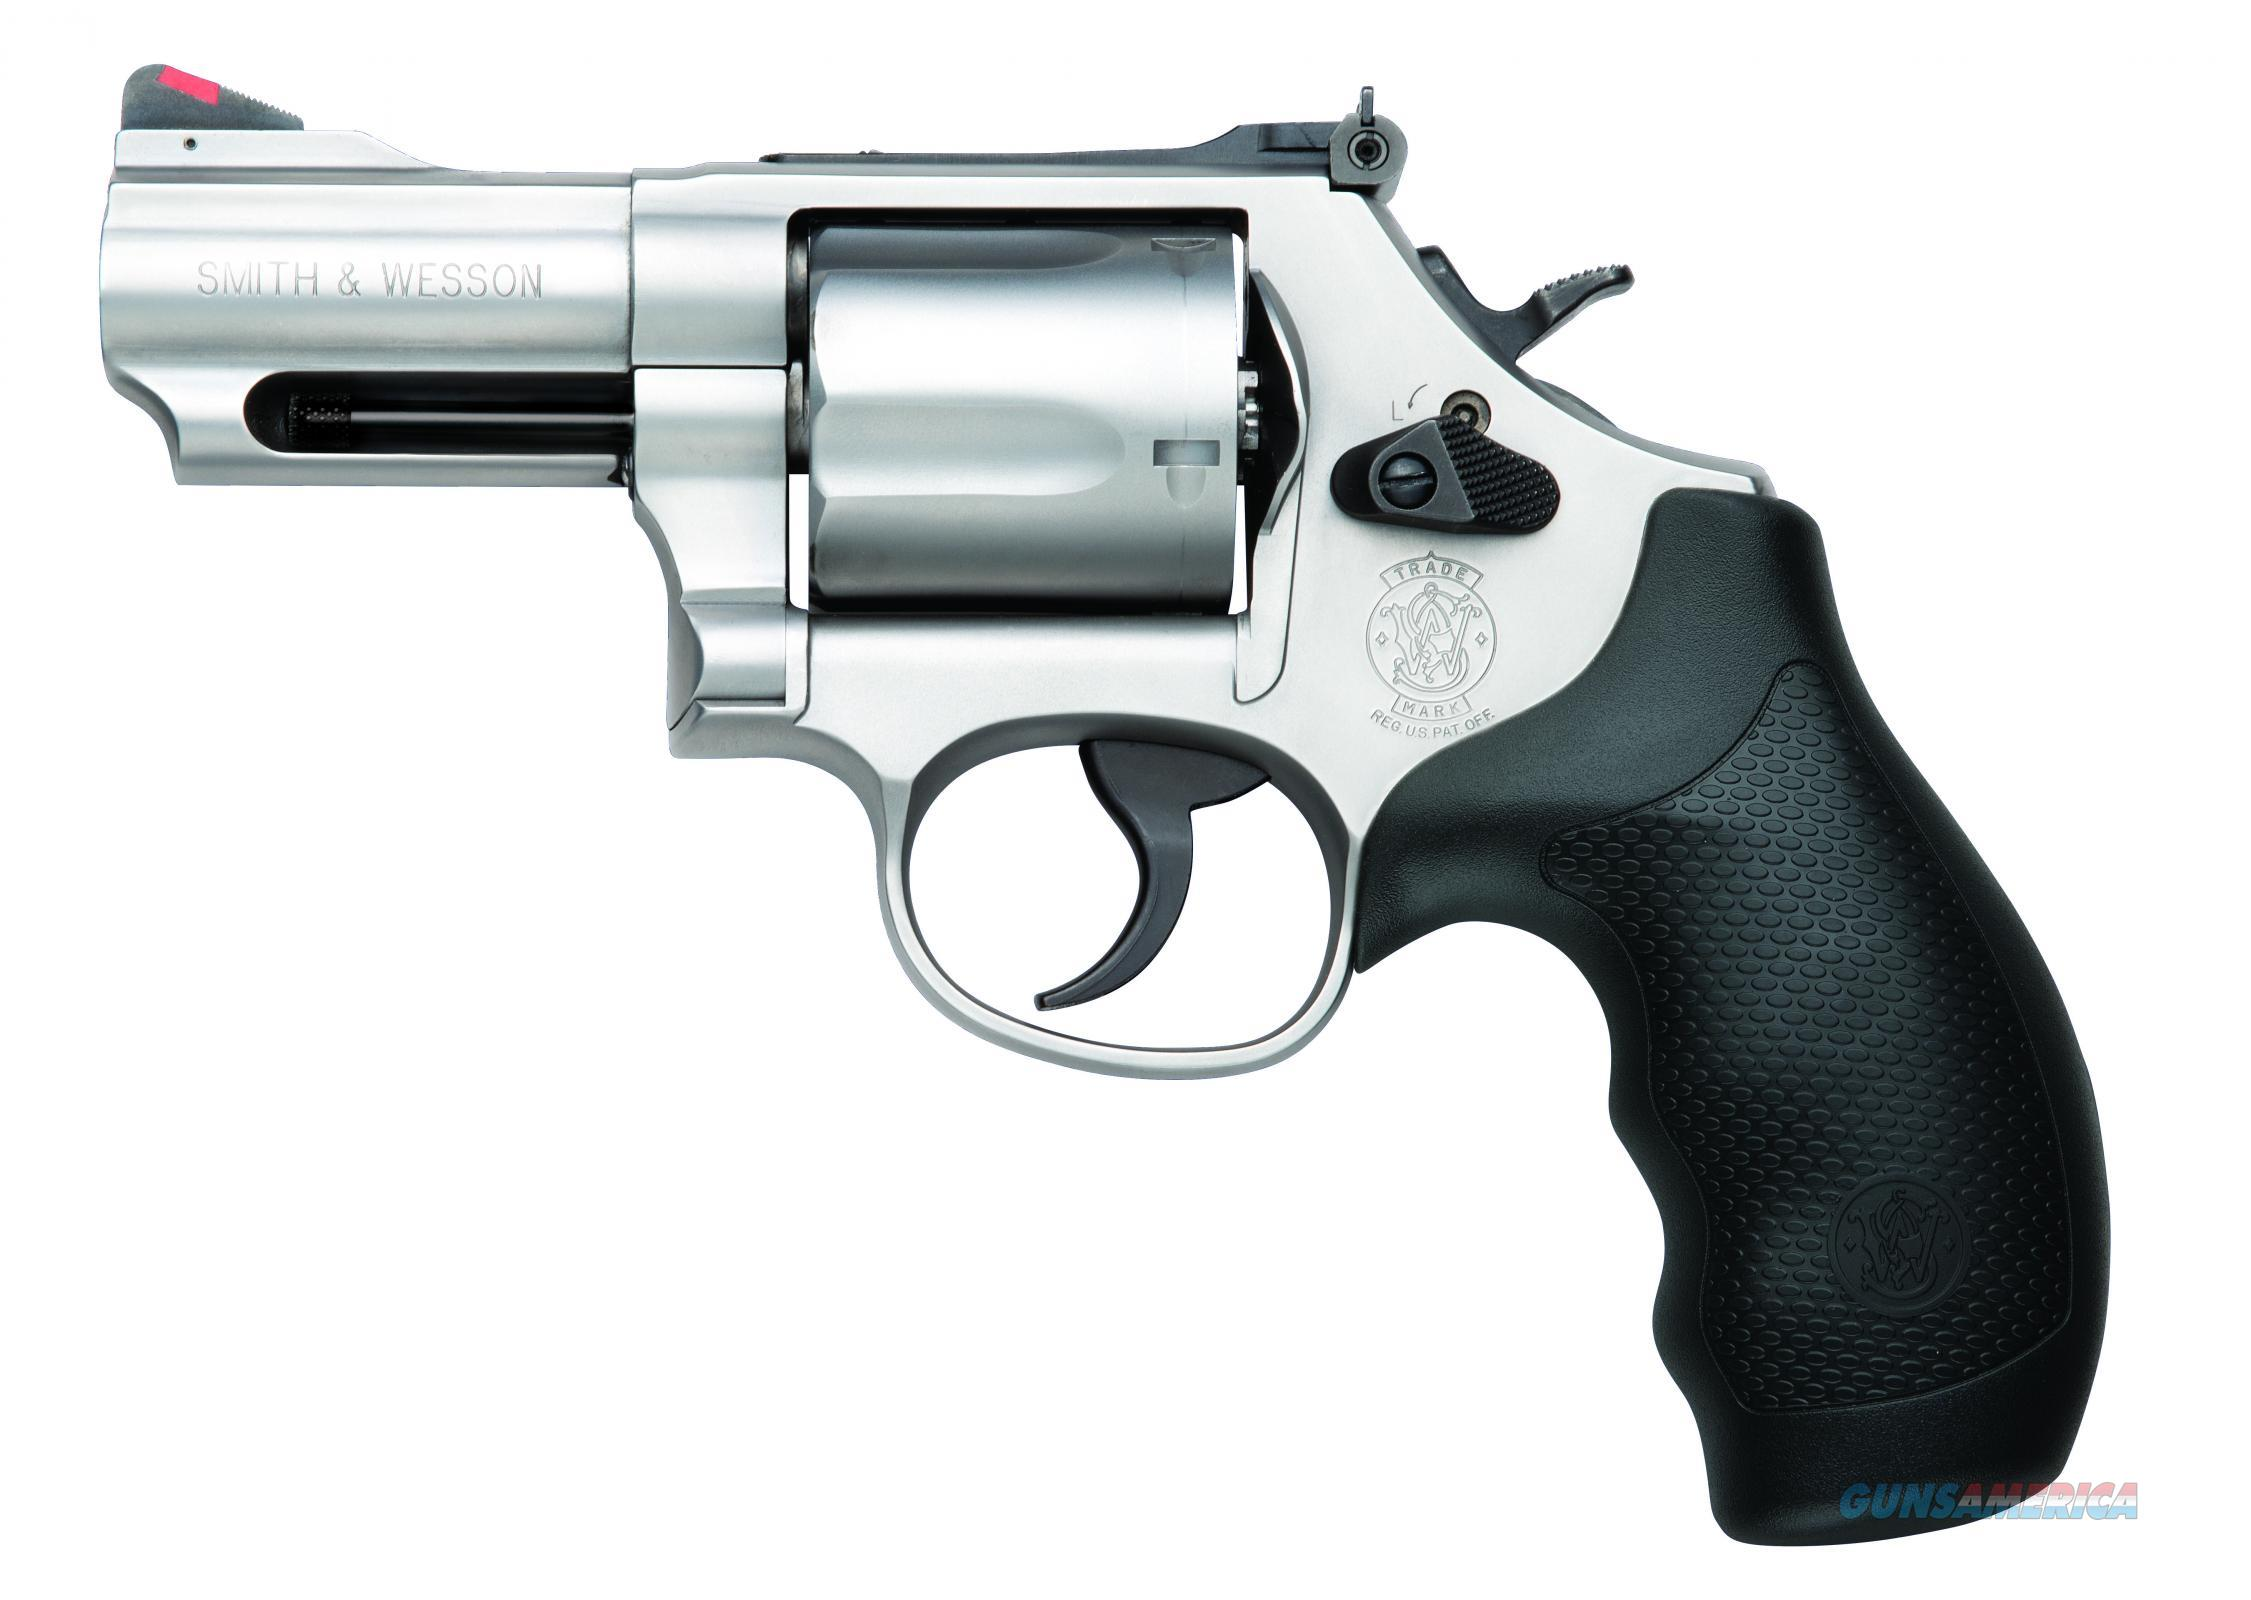 Smith & Wesson 69 Combat Magnum .44 Mag 2.75 in Stainless L Frame 5 Shot 10064 *NEW*  Guns > Pistols > Smith & Wesson Revolvers > Full Frame Revolver